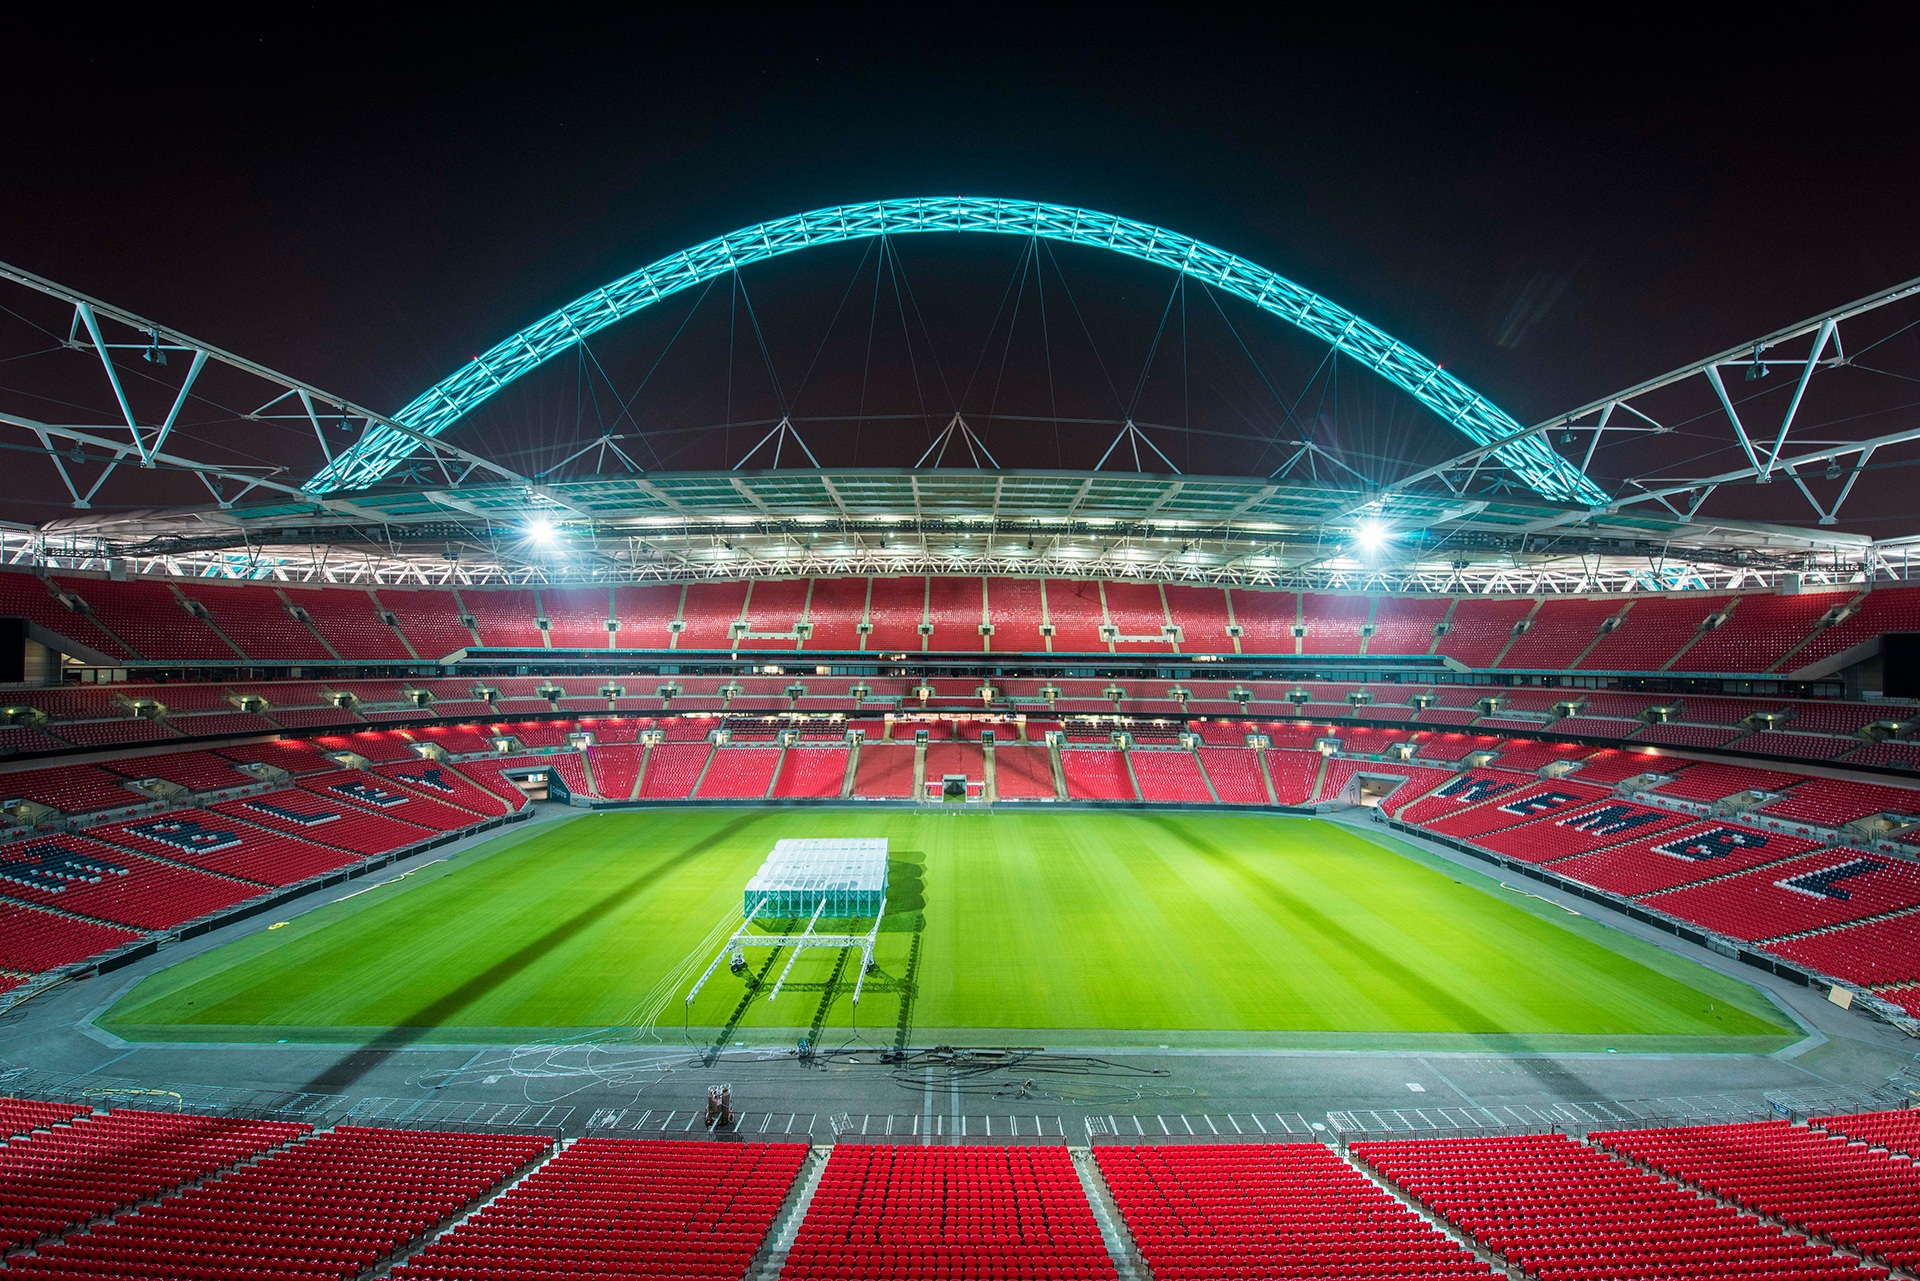 Wembley Stadium Inside Photo